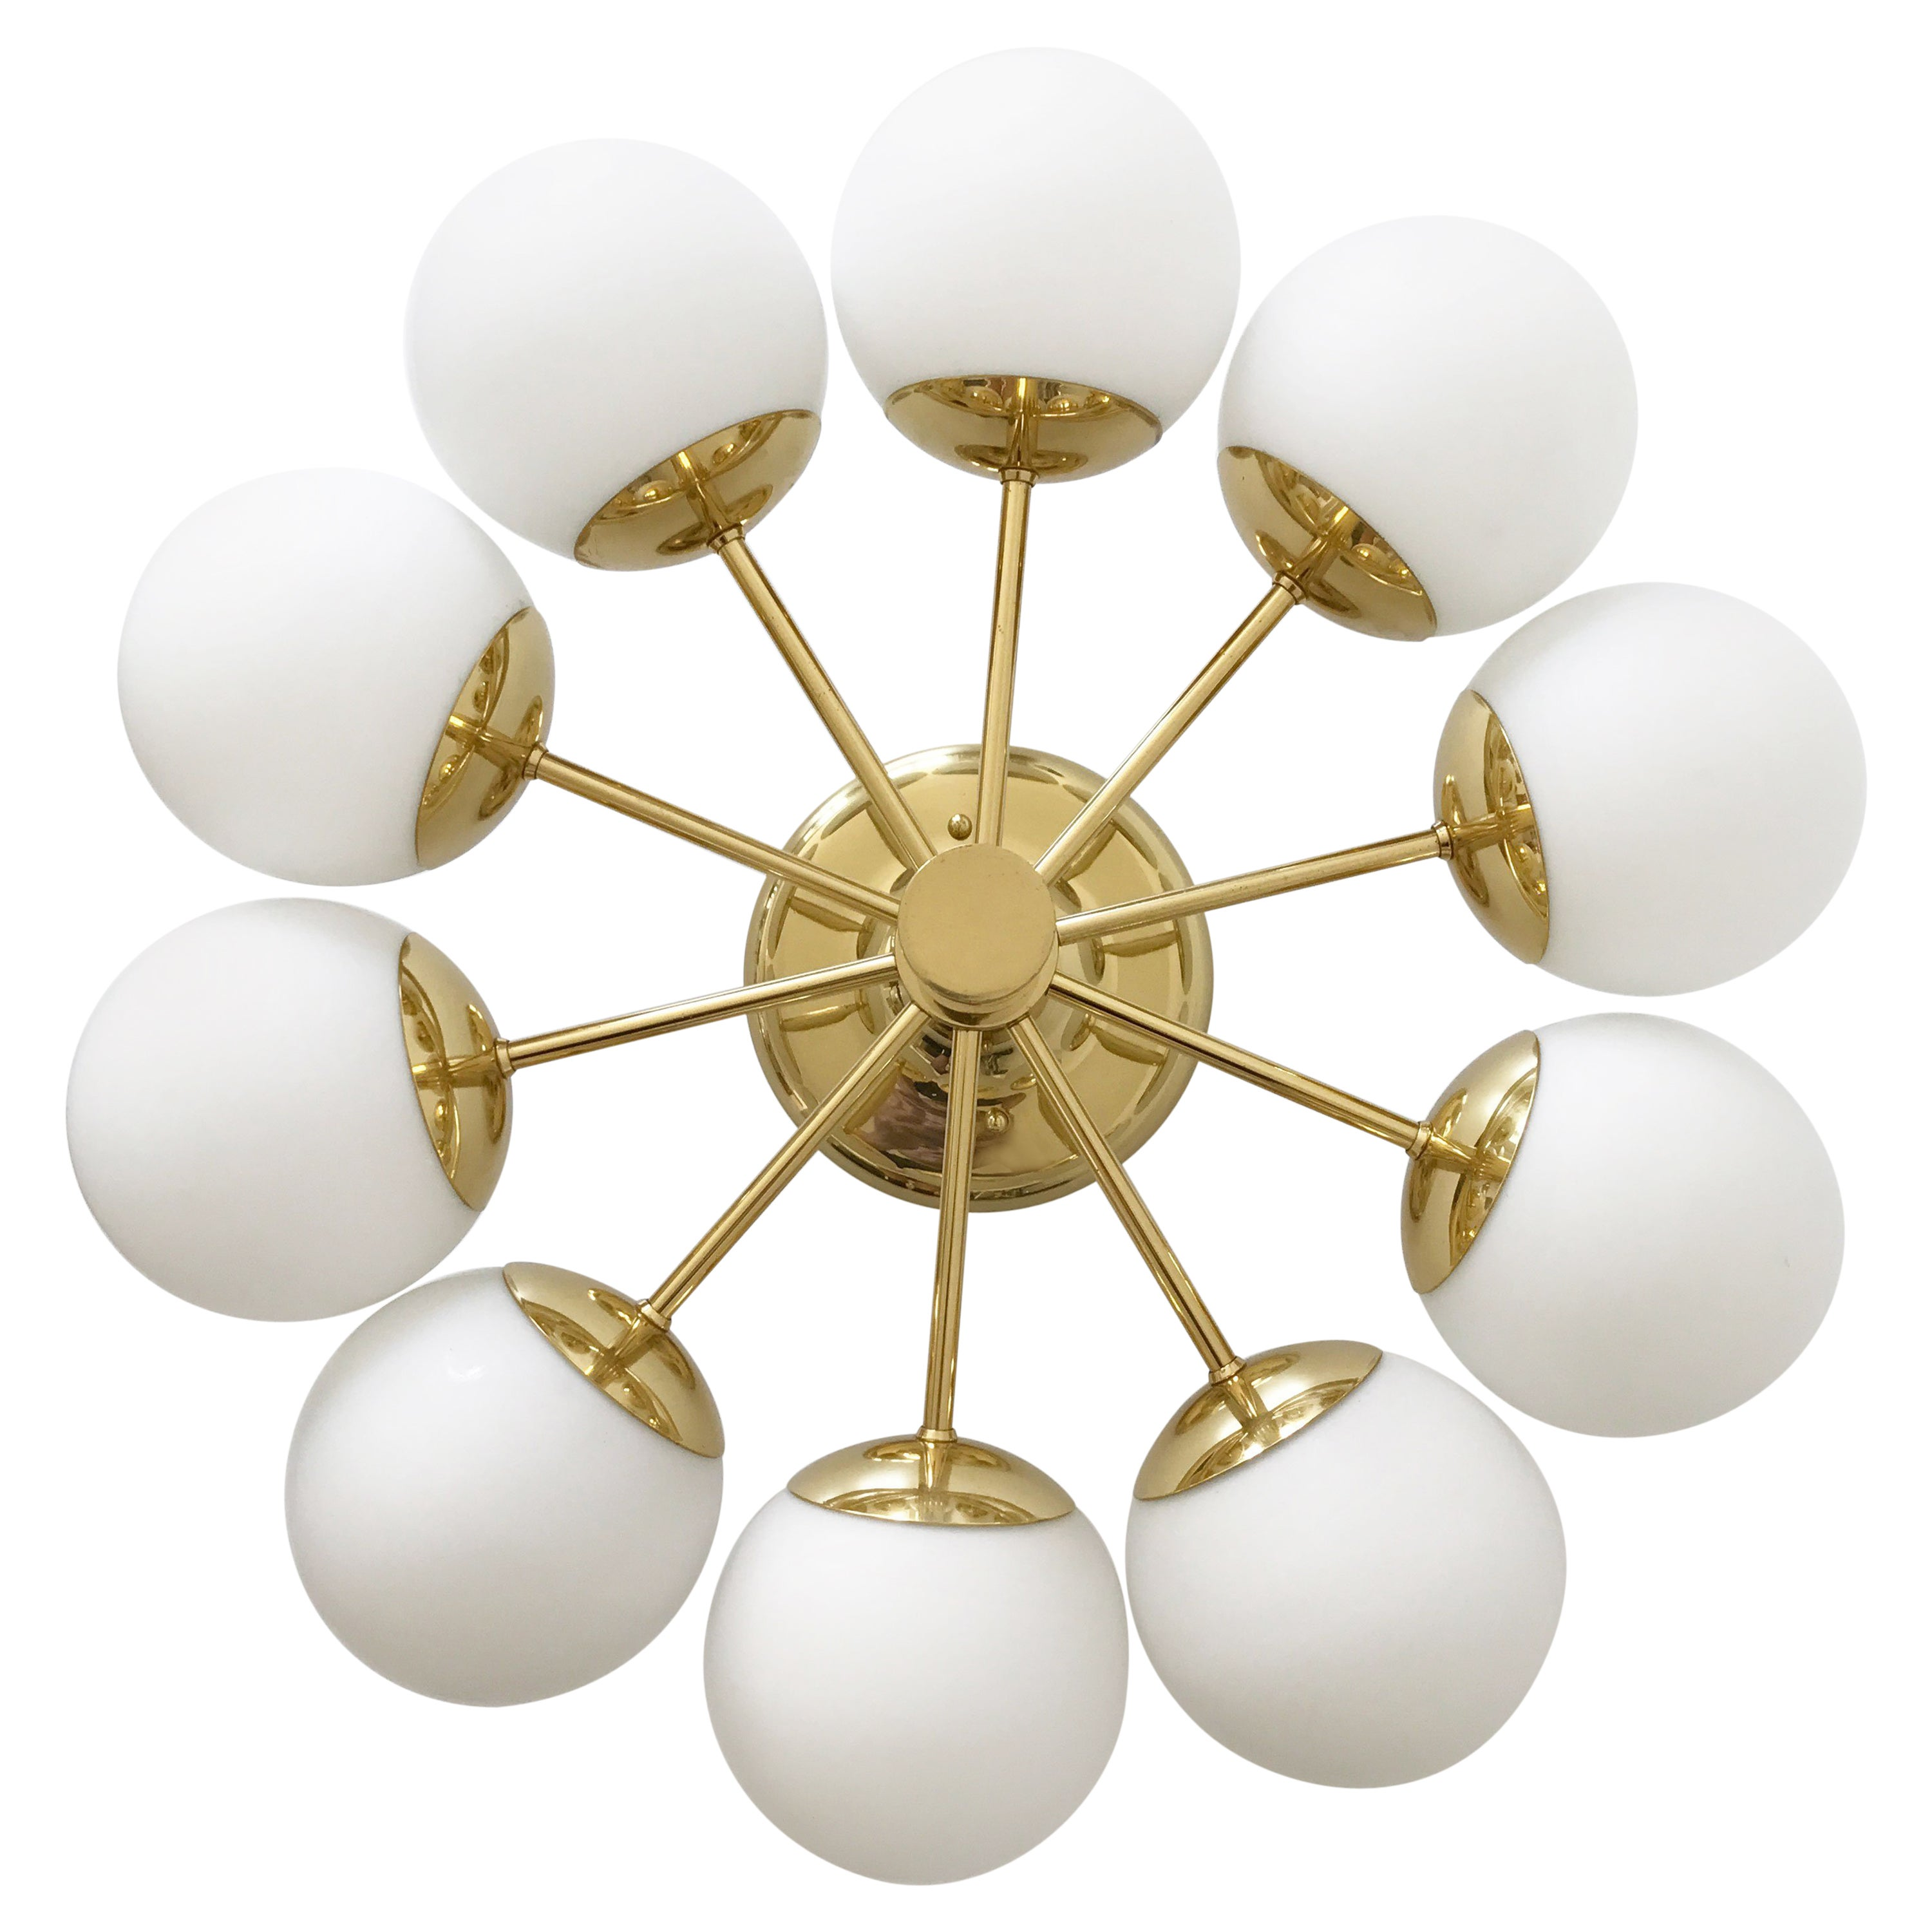 Sputnik multi globe chandelier or ceiling lamp by kaiser leuchten germany 1970s for sale at 1stdibs